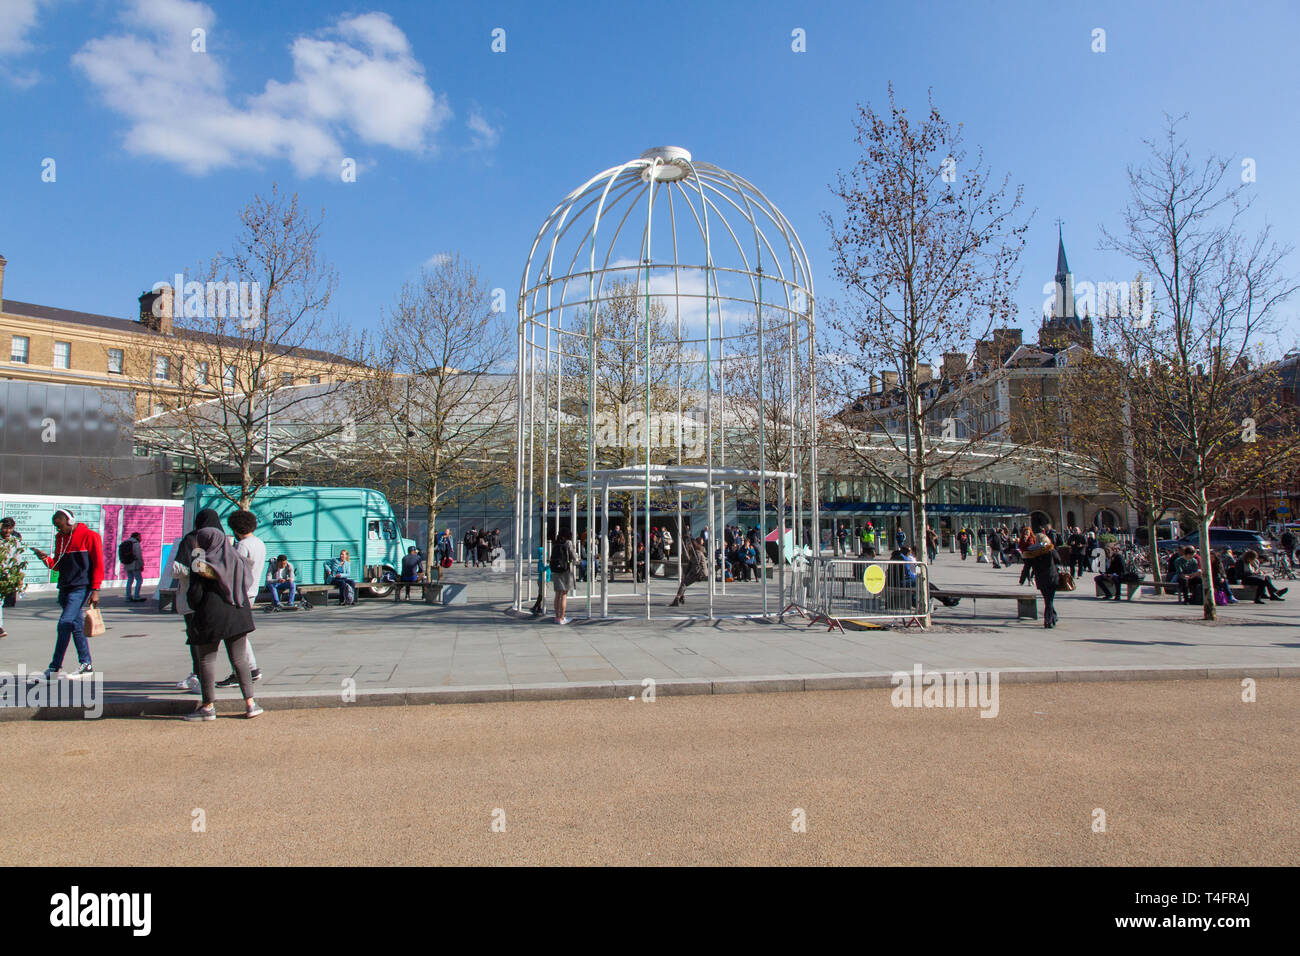 Giant Birdcage swing (Identified Flying Object )outside ,Kings Cross Station, London, England, United Kingdom. - Stock Image